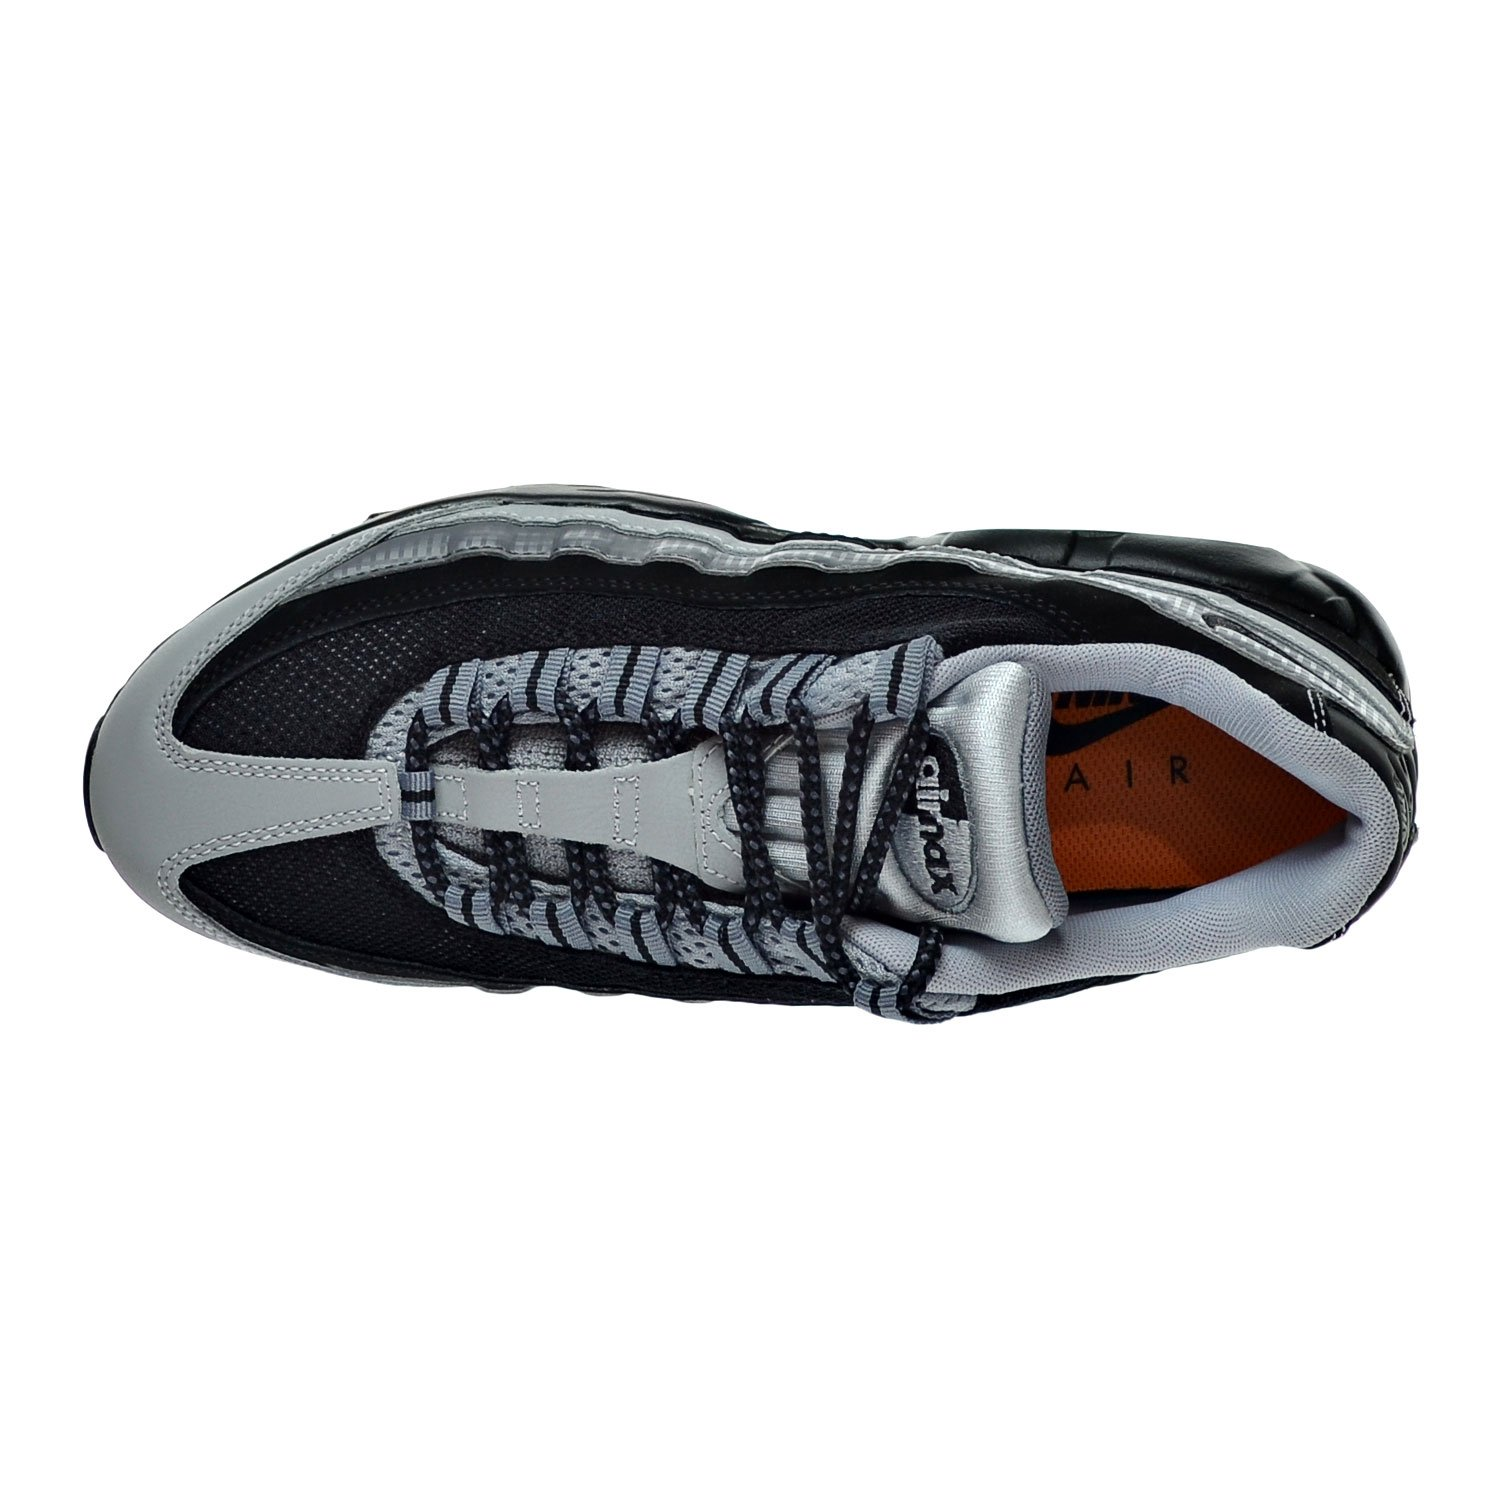 low priced 72d89 34dd8 Amazon.com   Nike Air Max 95 Essential Men s Shoes Black Wolf Grey Cool Grey  749766-005   Fashion Sneakers